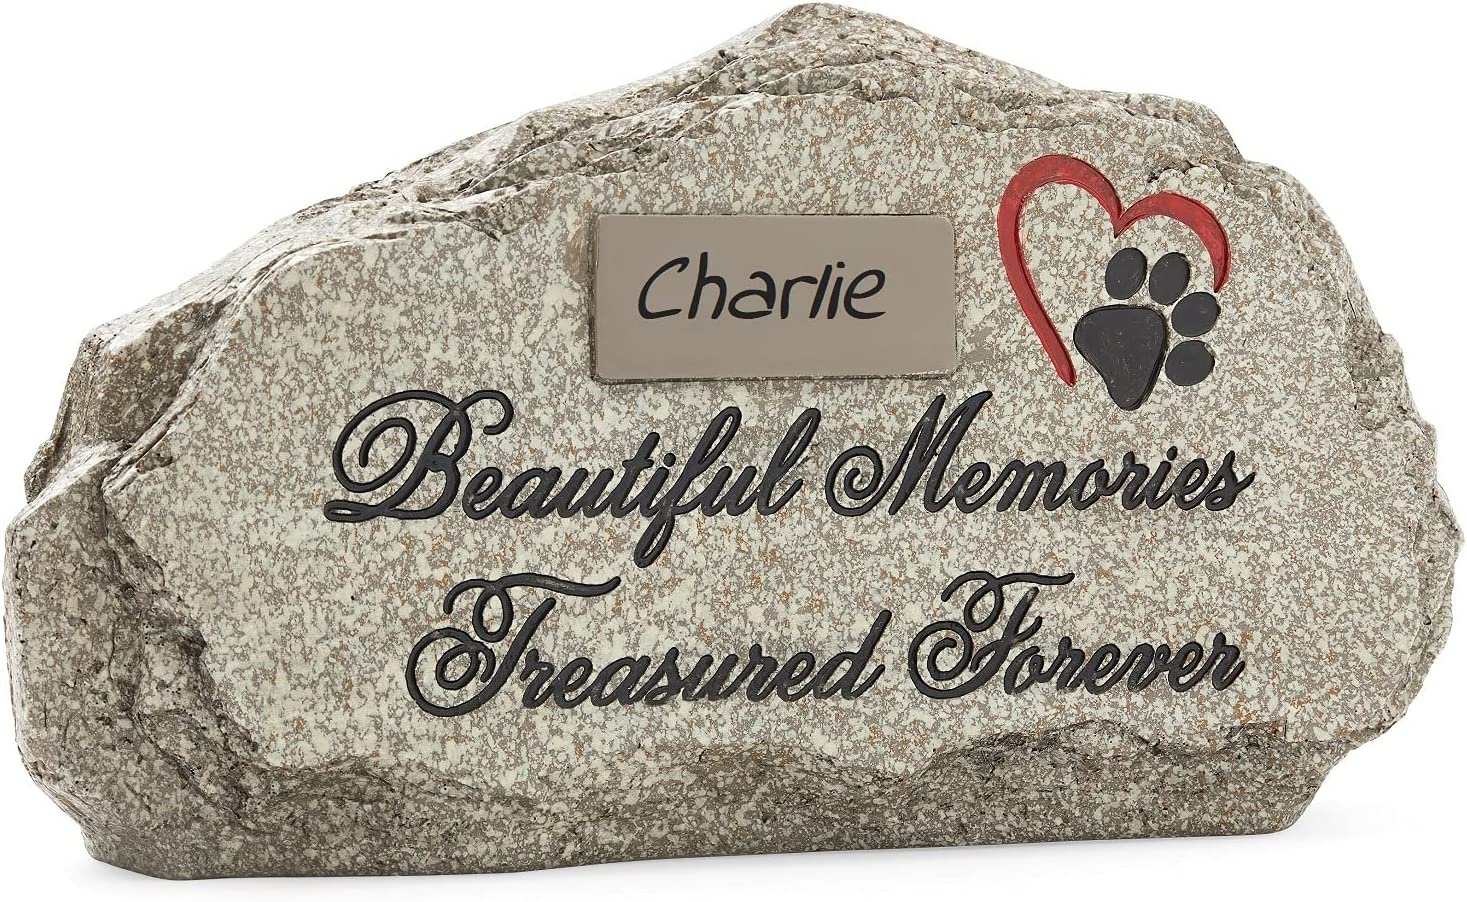 Pet Grave Stone Personalized. Can Be Displayed Indoors or Out. A Beautifully Packaged Cat or Dog Loss Sympathy Gift for a Grieving Pet Owner. Headstone, Tombstone or Monument, DIY Personalize at Home.